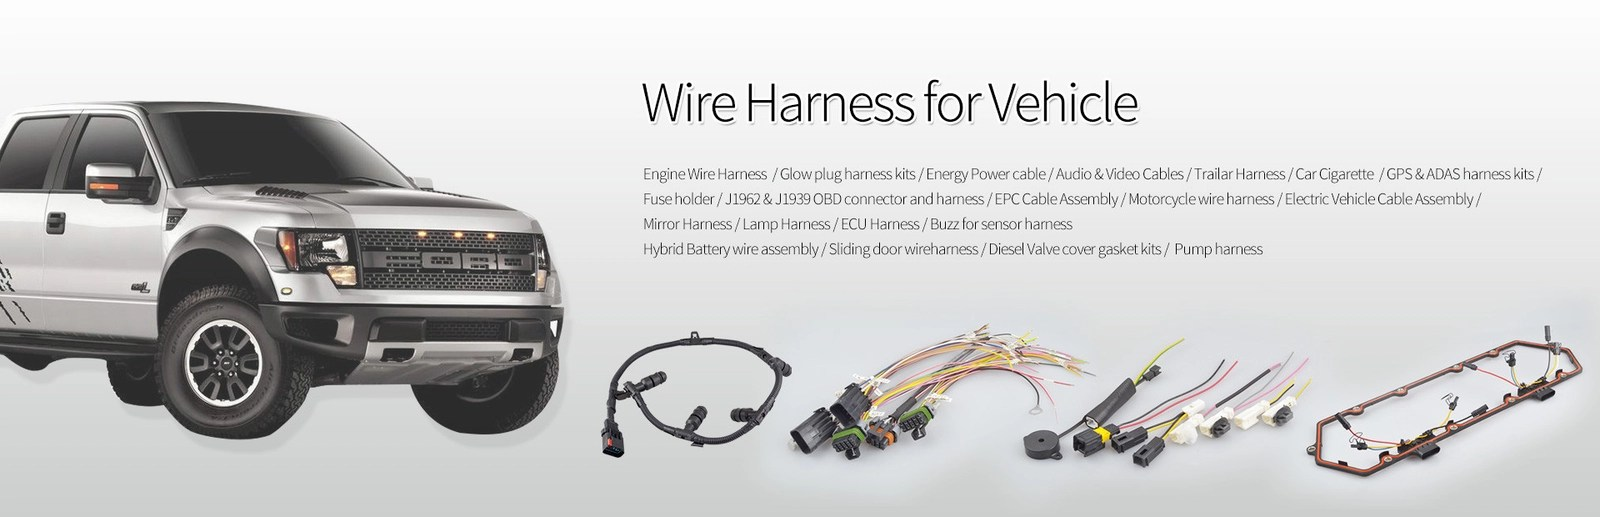 hight resolution of electronic wiring harness automotive wiring harness